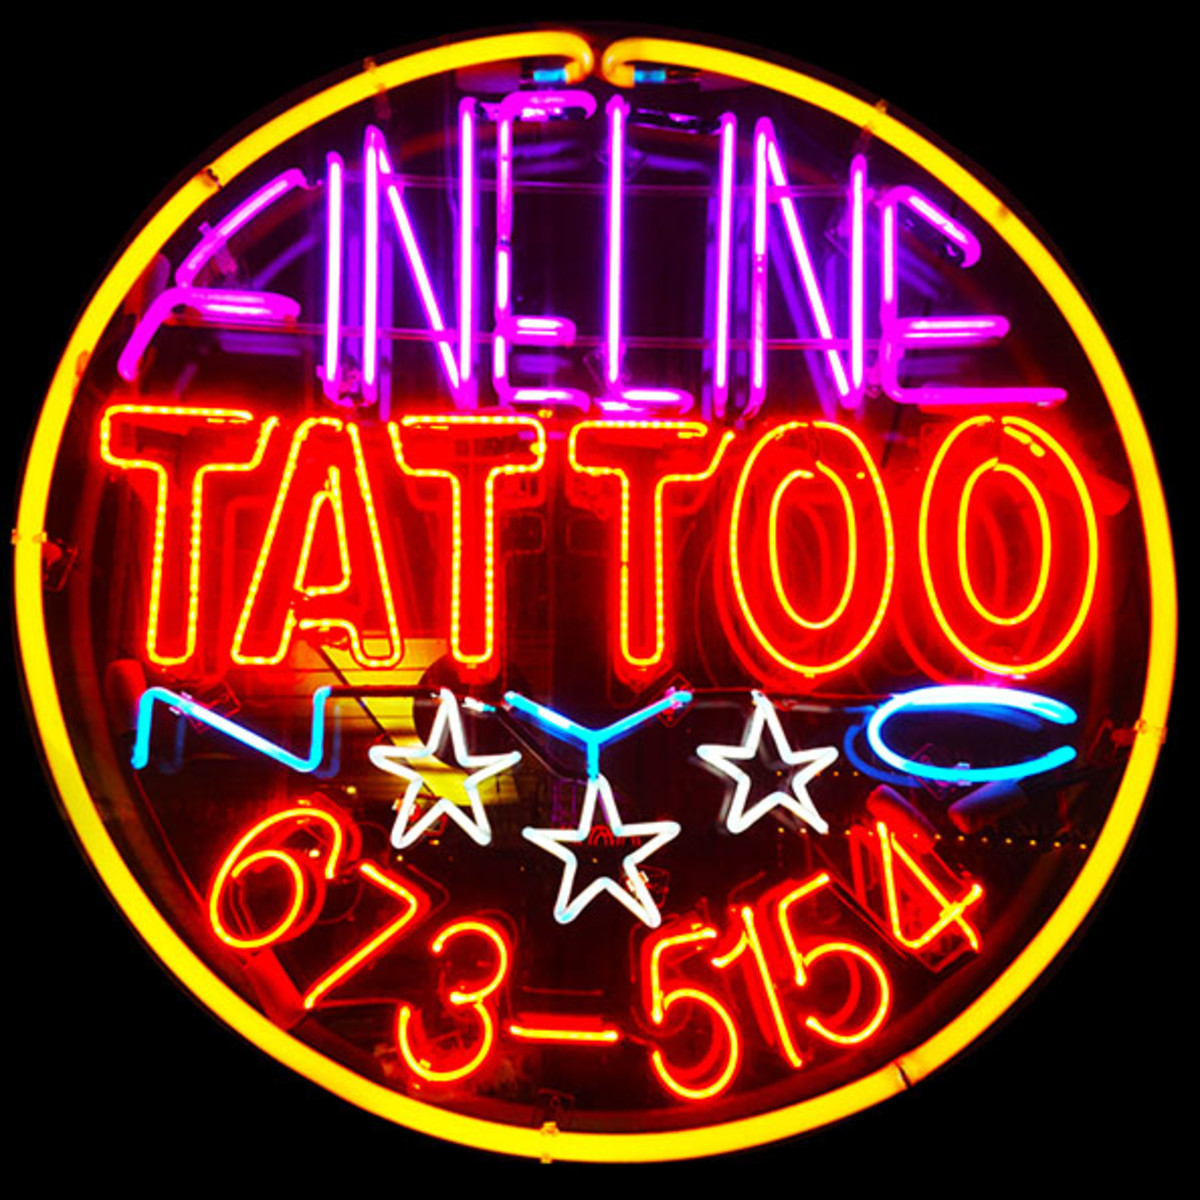 home_fineline-tattoo-nyc-neon-sign3